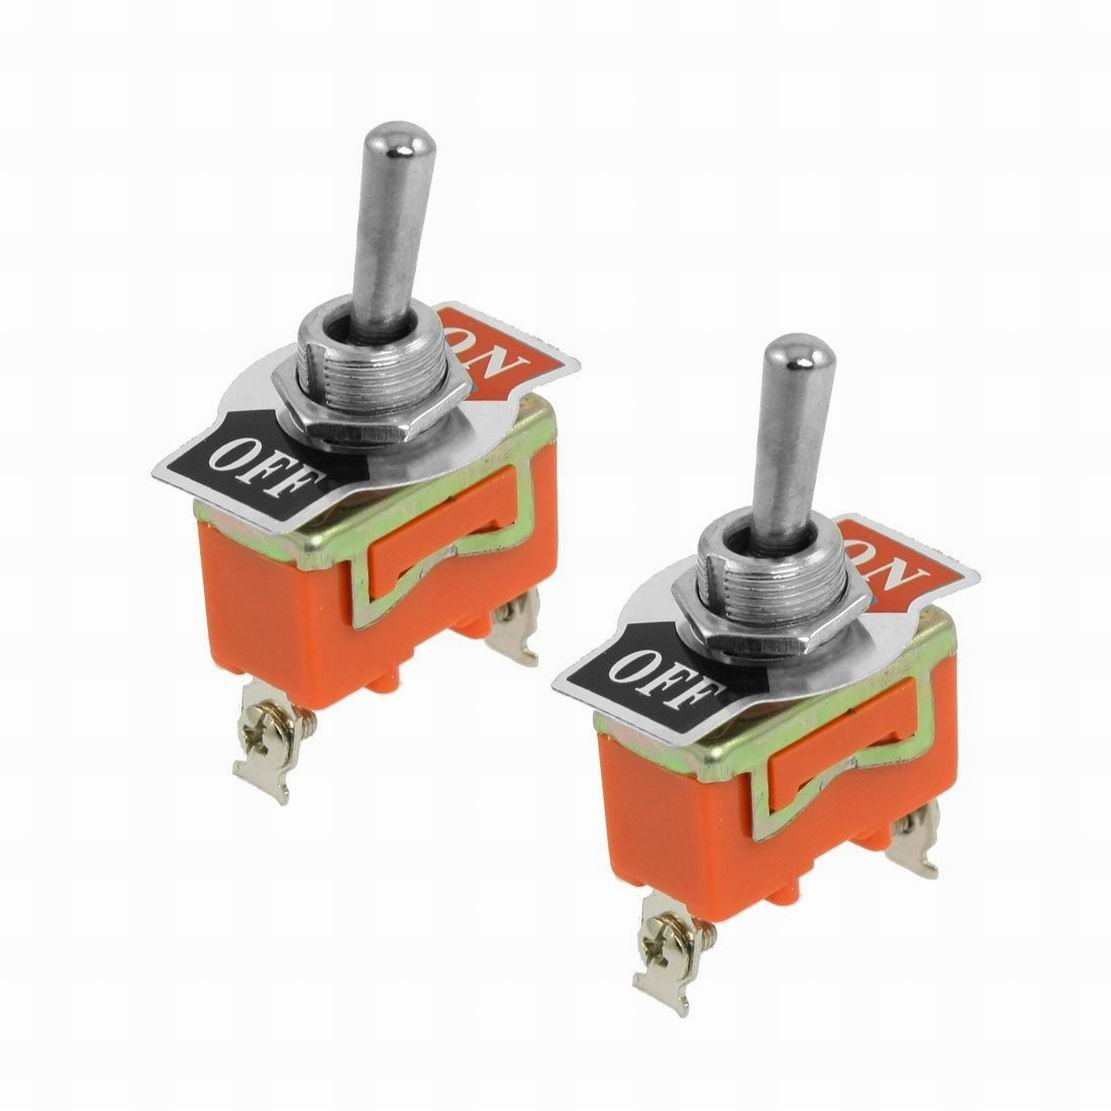 Ac 250v 15a Spst 2 Position On Off Toggle Switch Pcs By Houseuse Heavy Duty Onoff